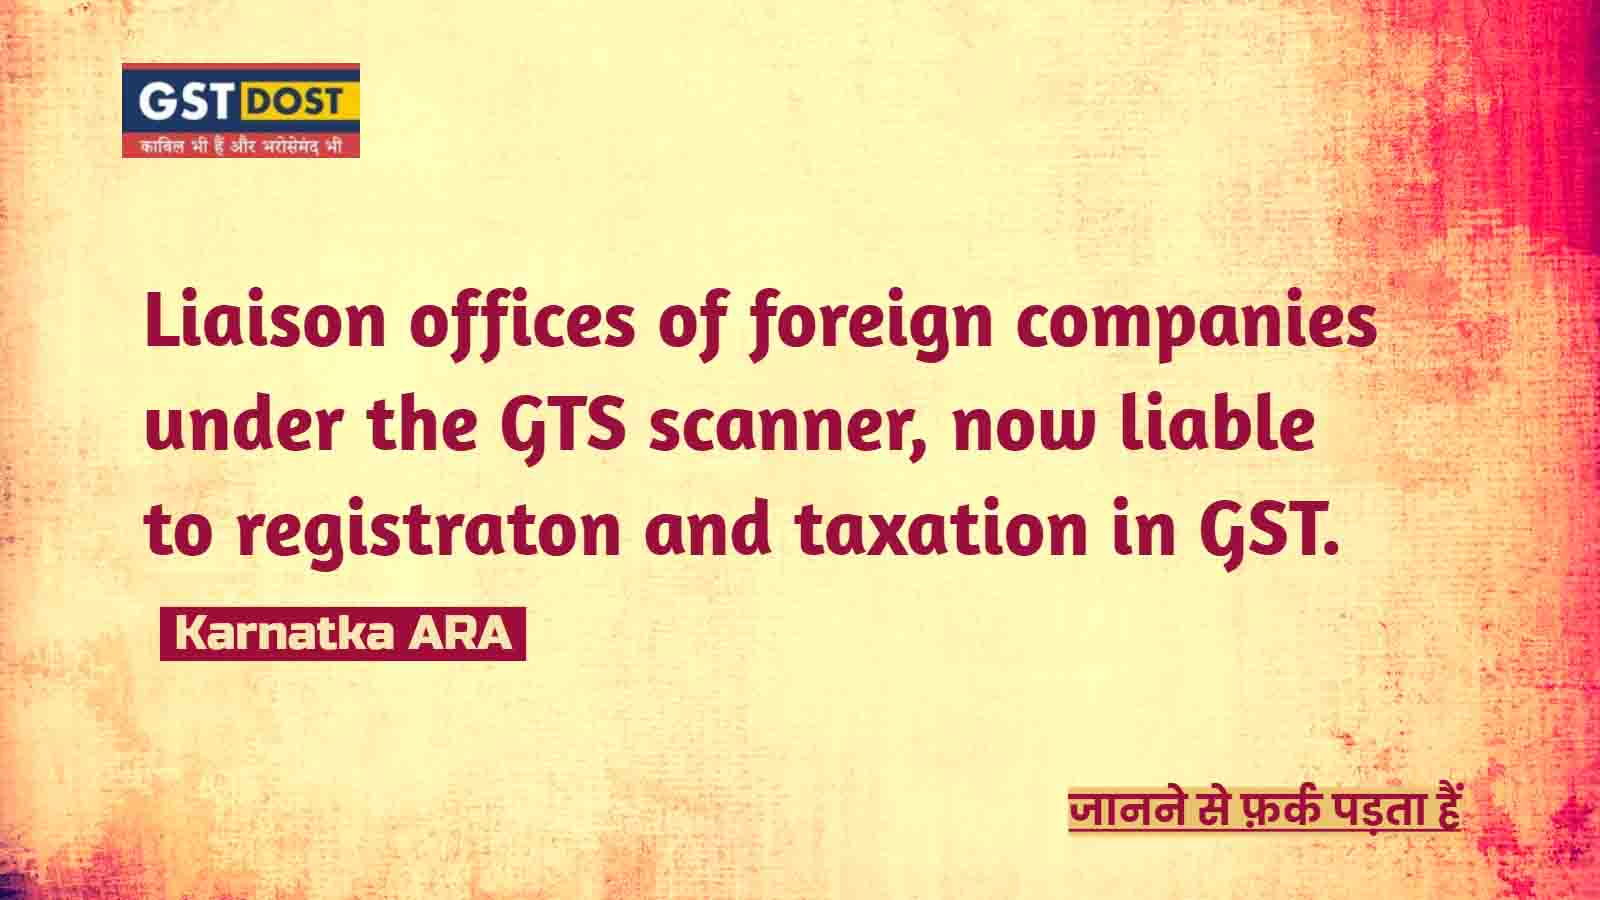 Liaison offices of foreign companies under the GTS scanner, now liable to taxation.